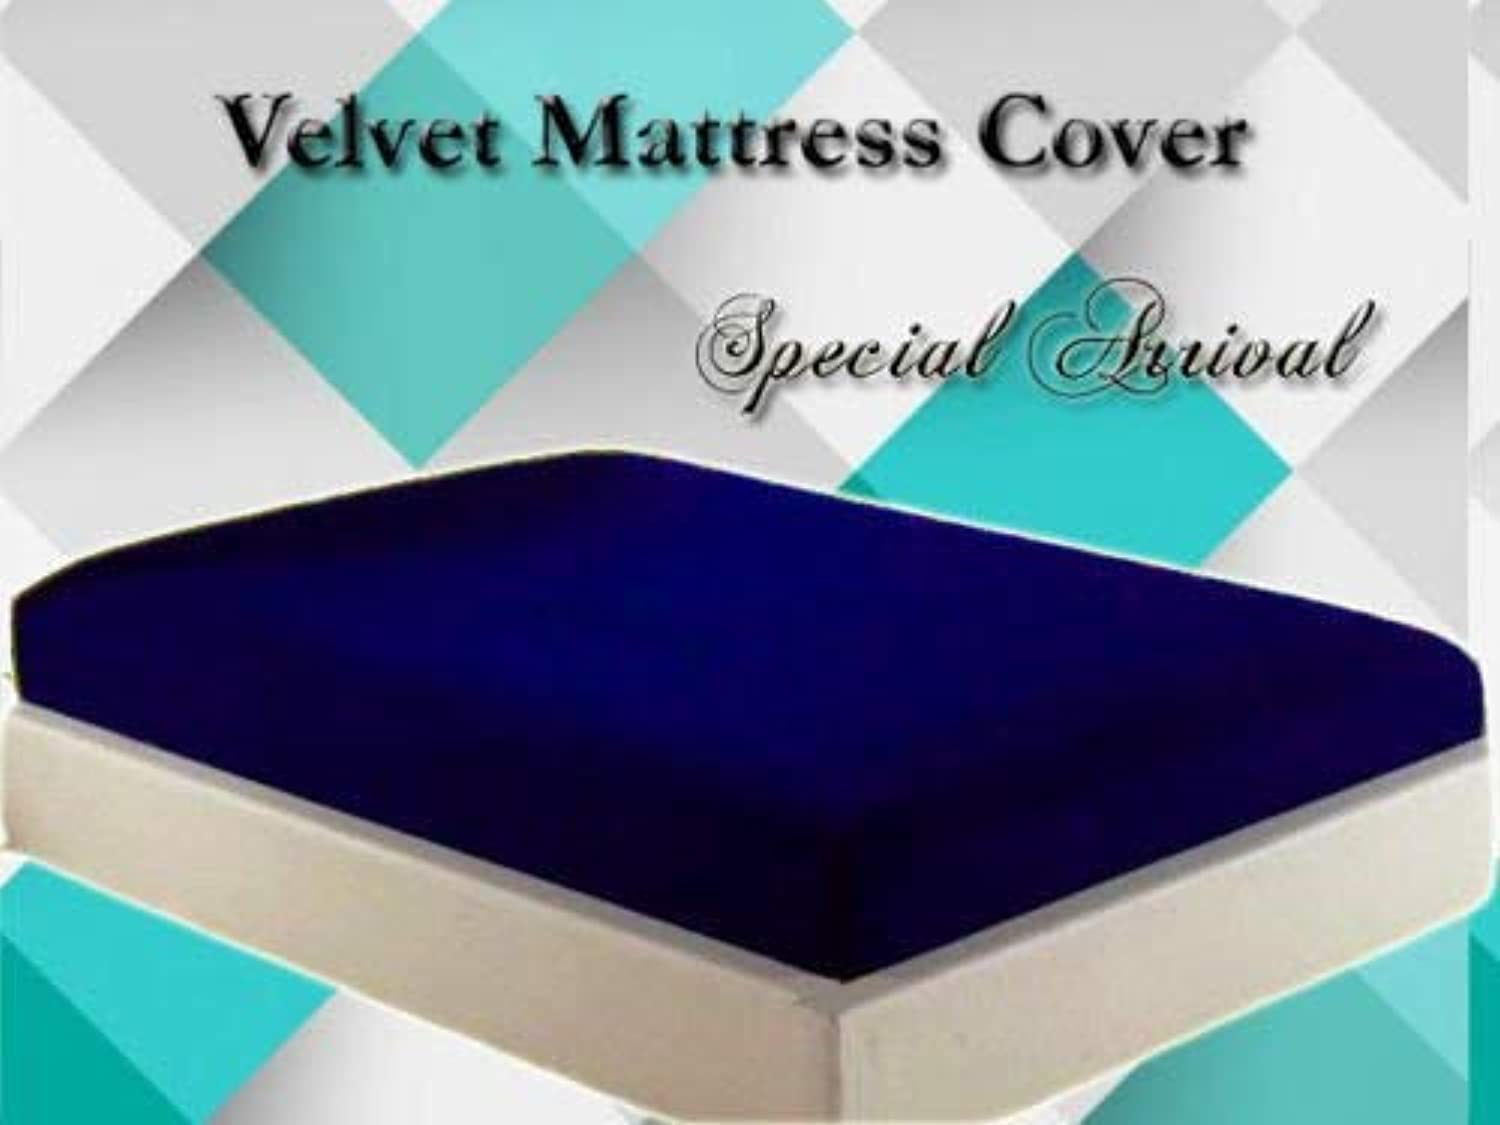 Luxurious Velvet Mattress Cover Predector 1 pc with zipper closure Gift Home Decor, Royal bluee, Queen, 14  Height mattress